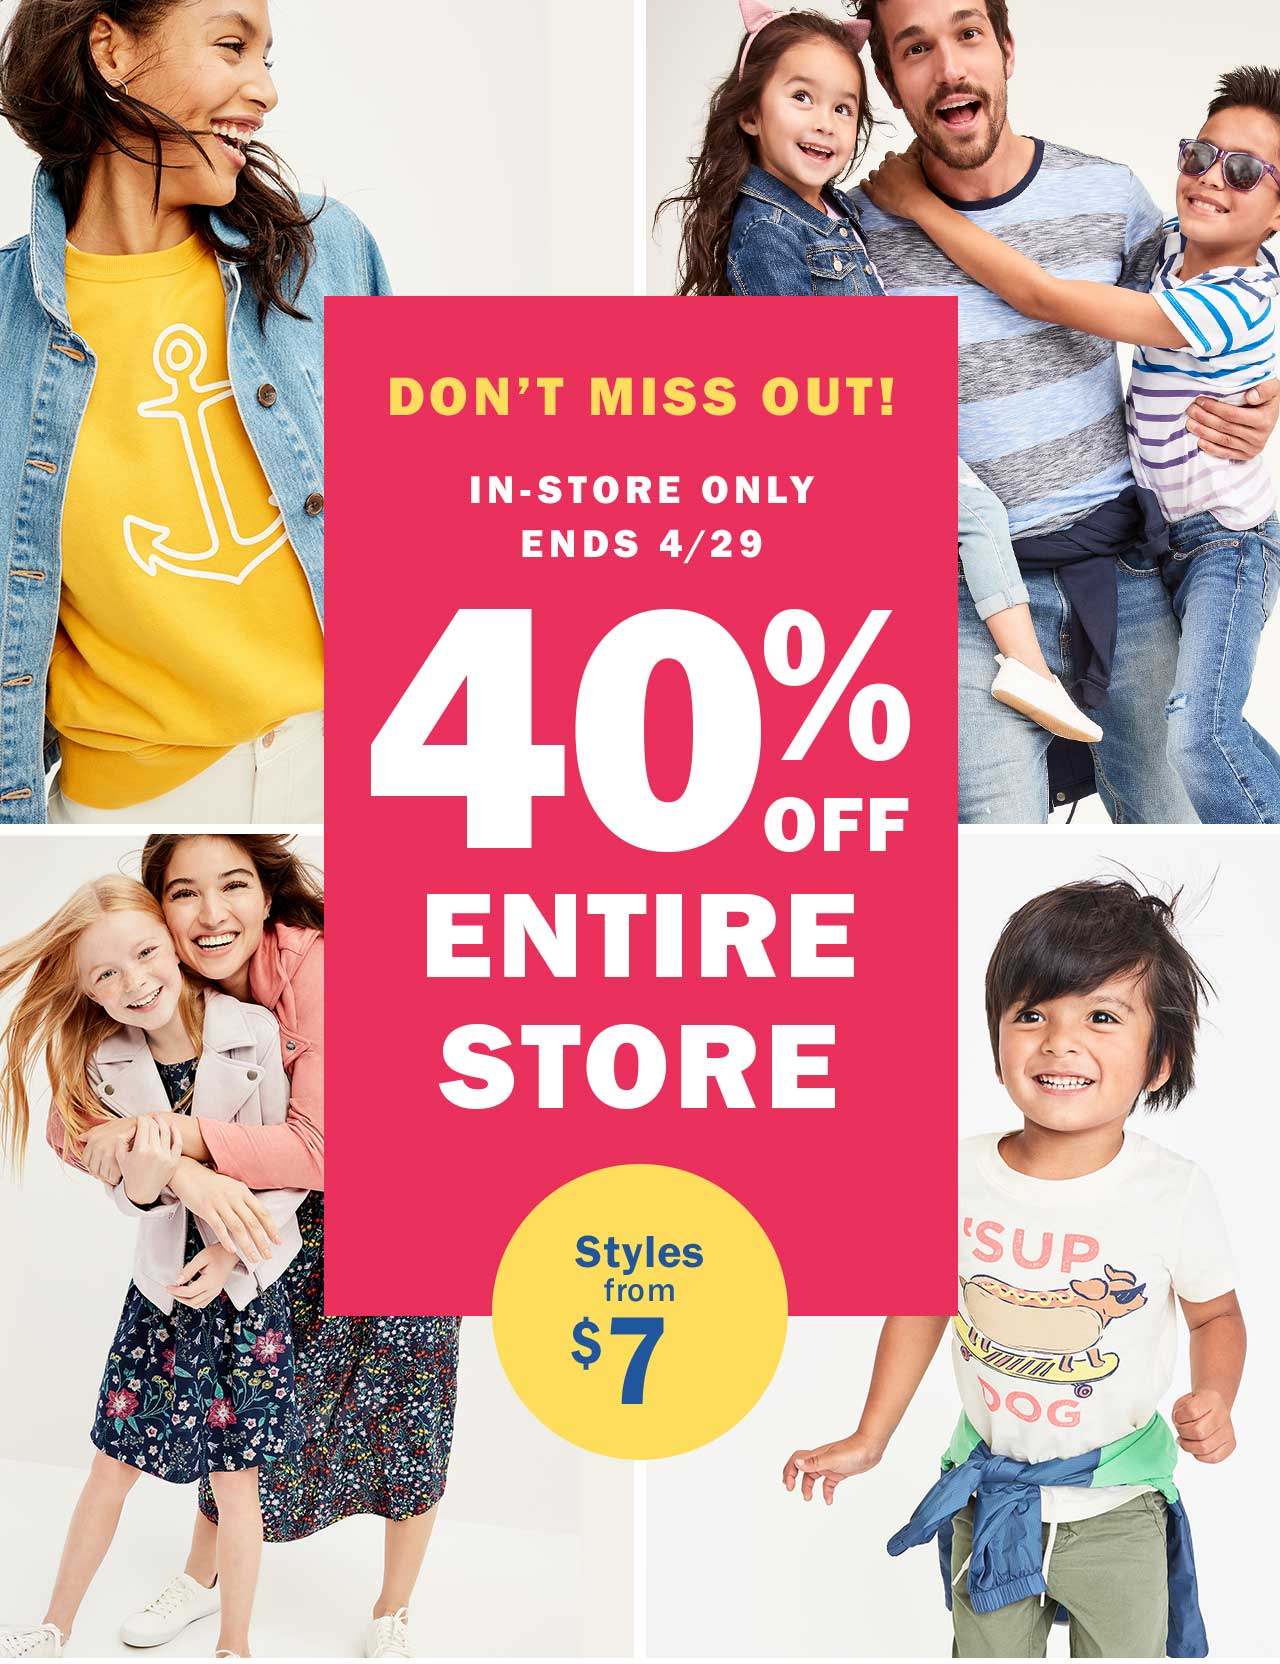 40% OFF ENTIRE STORE